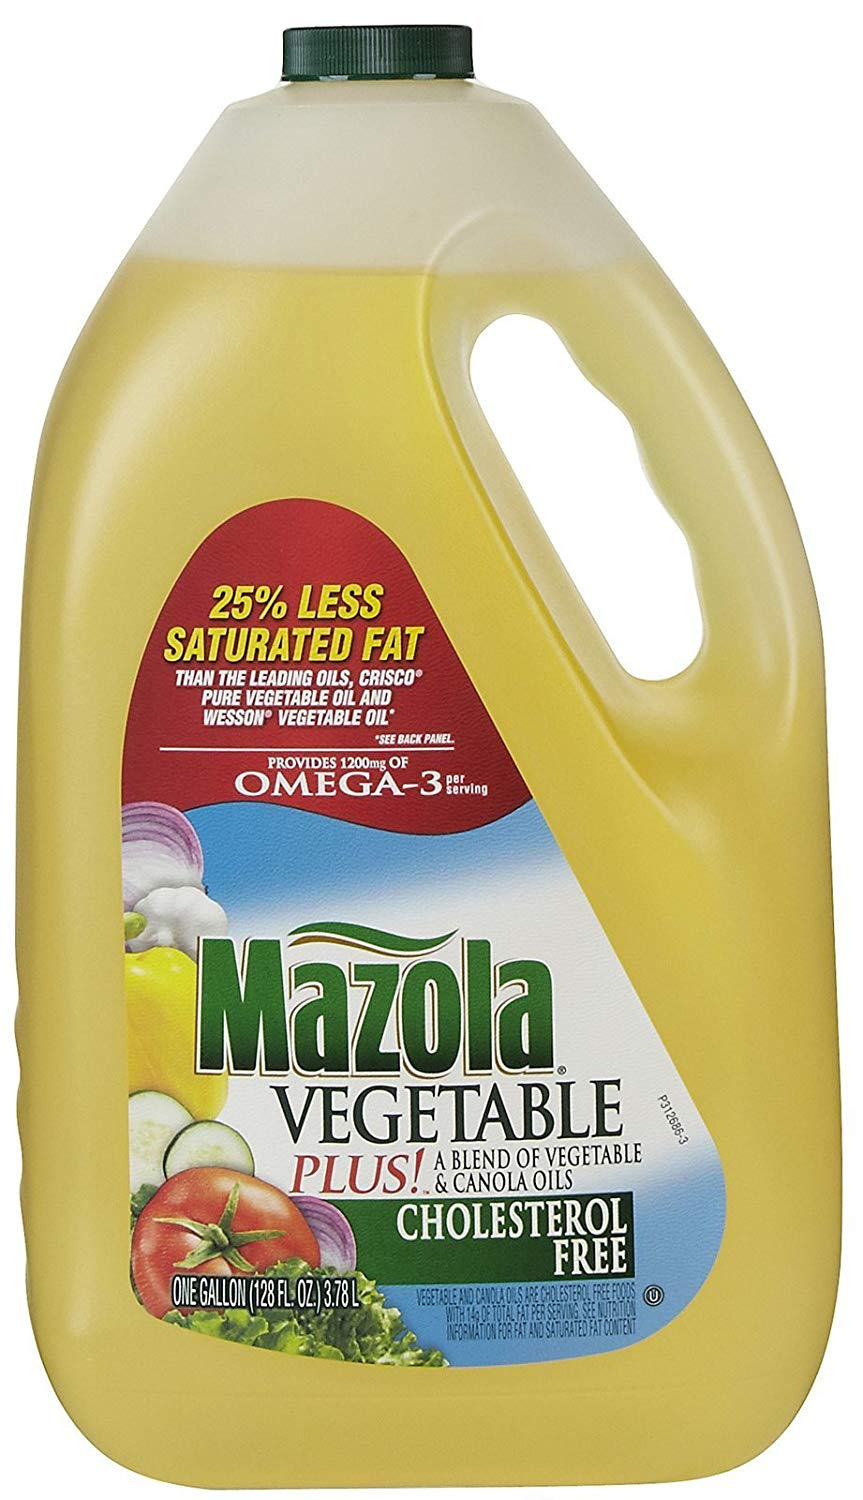 MAZOLA VEGETABLE OIL 1 GAL